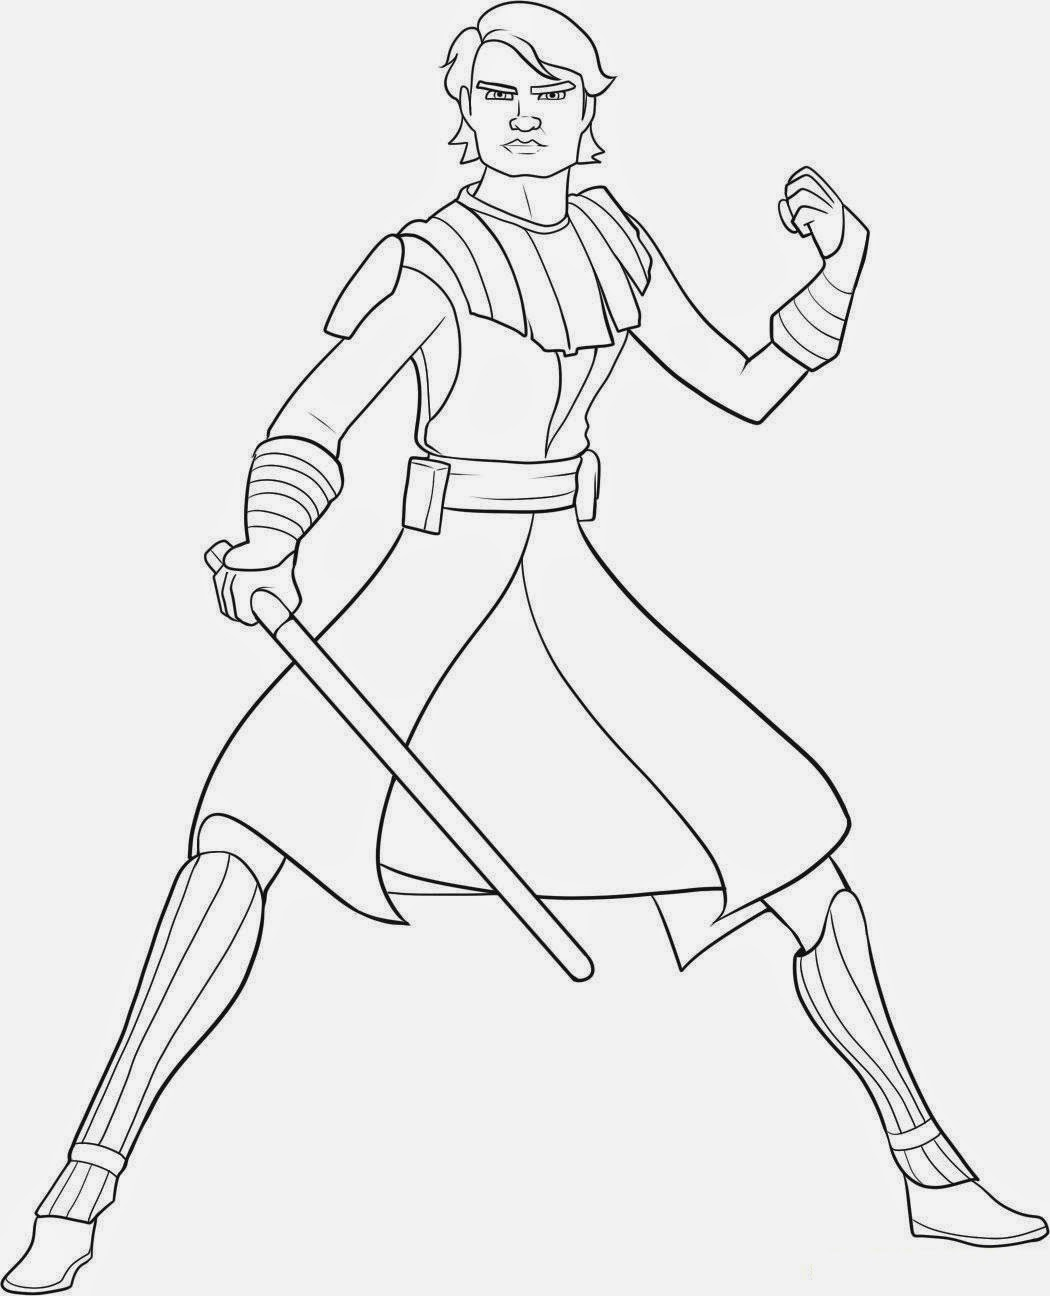 Malvorlagen Kostenlos Star Wars: Luke Skywalker Coloring Pages To Download And Print For Free